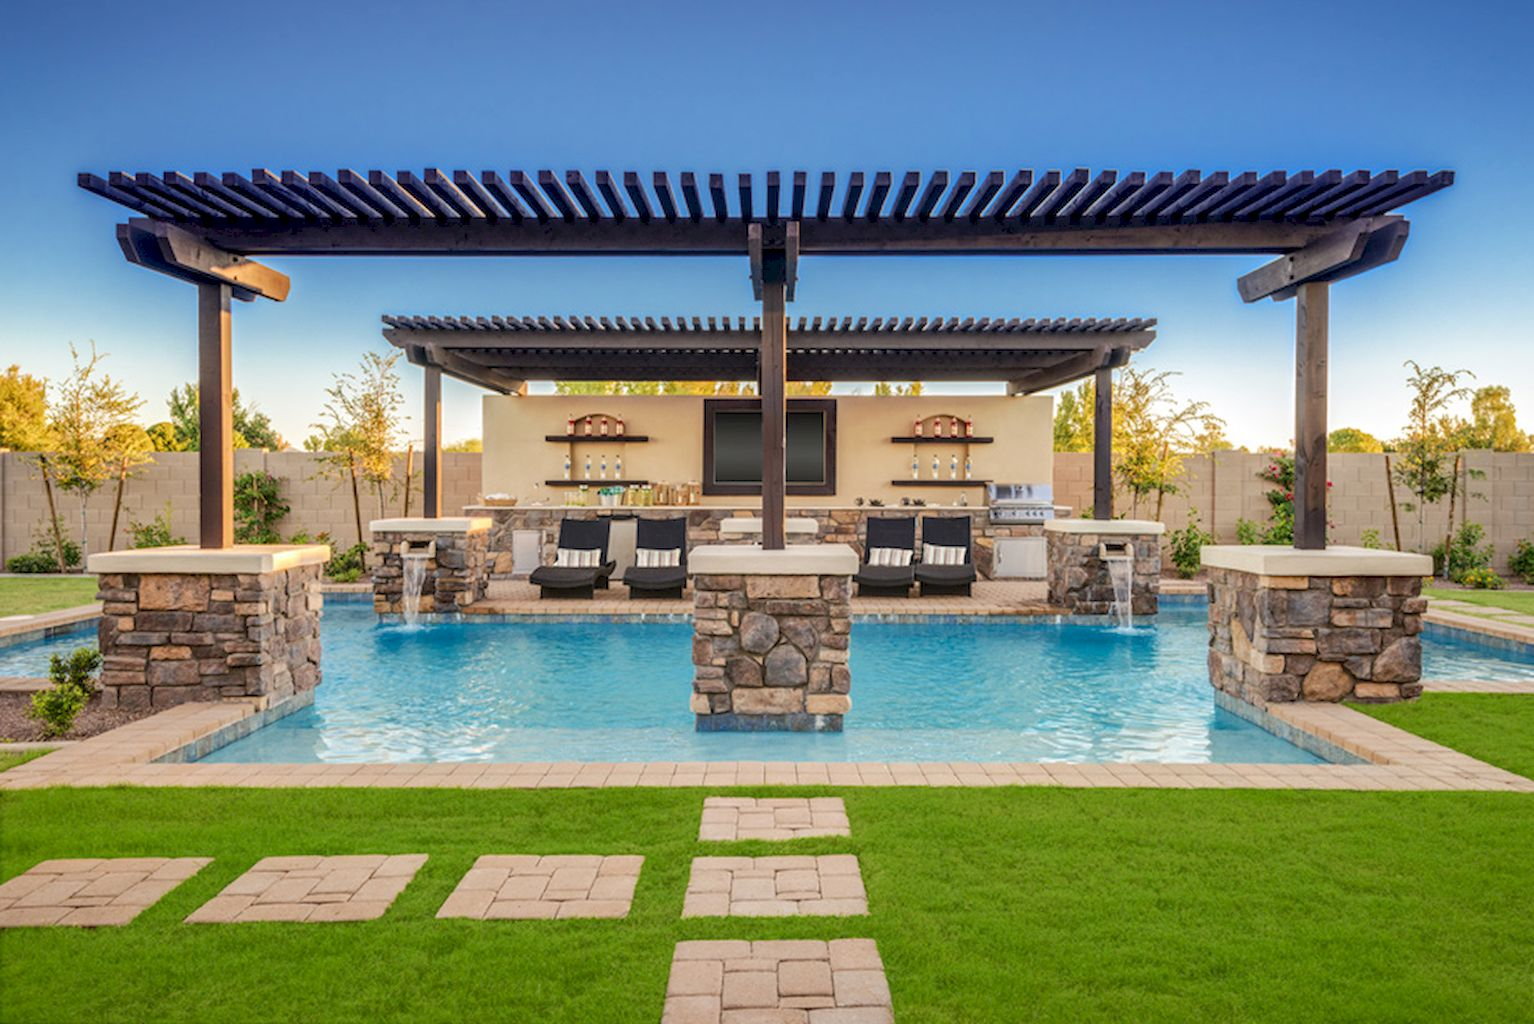 arizona backyard ideas on budget